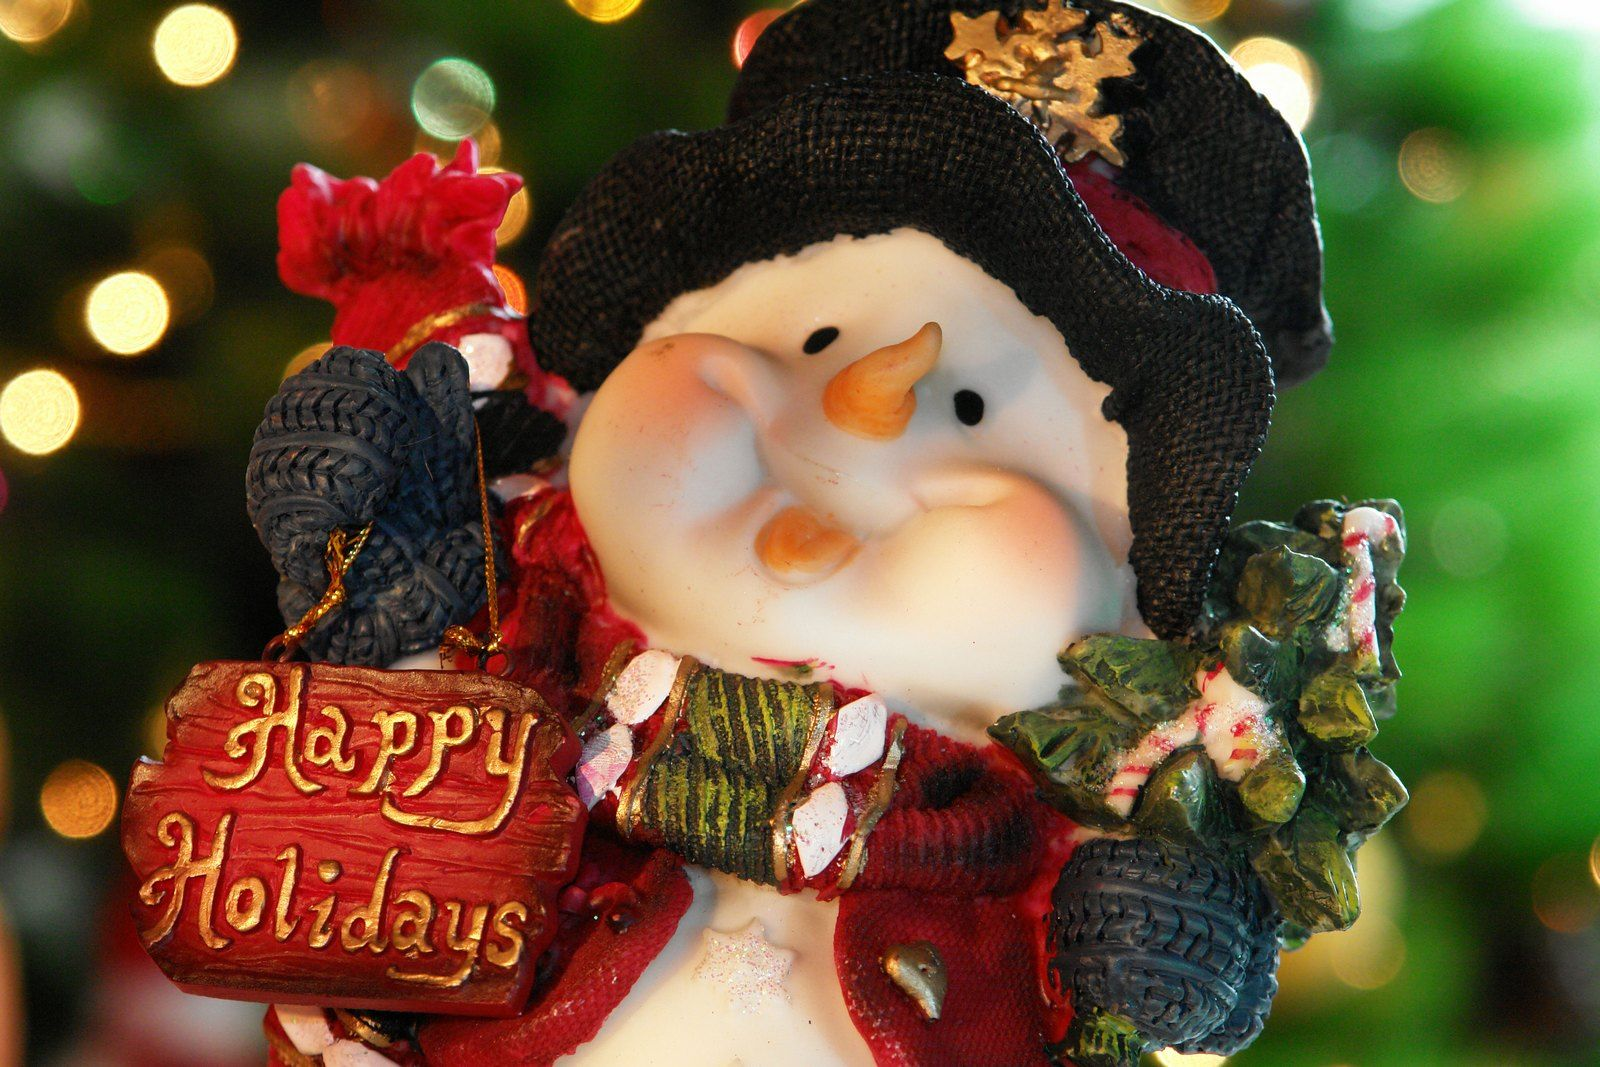 funny christmas backgrounds funny wallpapershd wallpapers cute christmas wallpapers - Funny Christmas Wallpaper